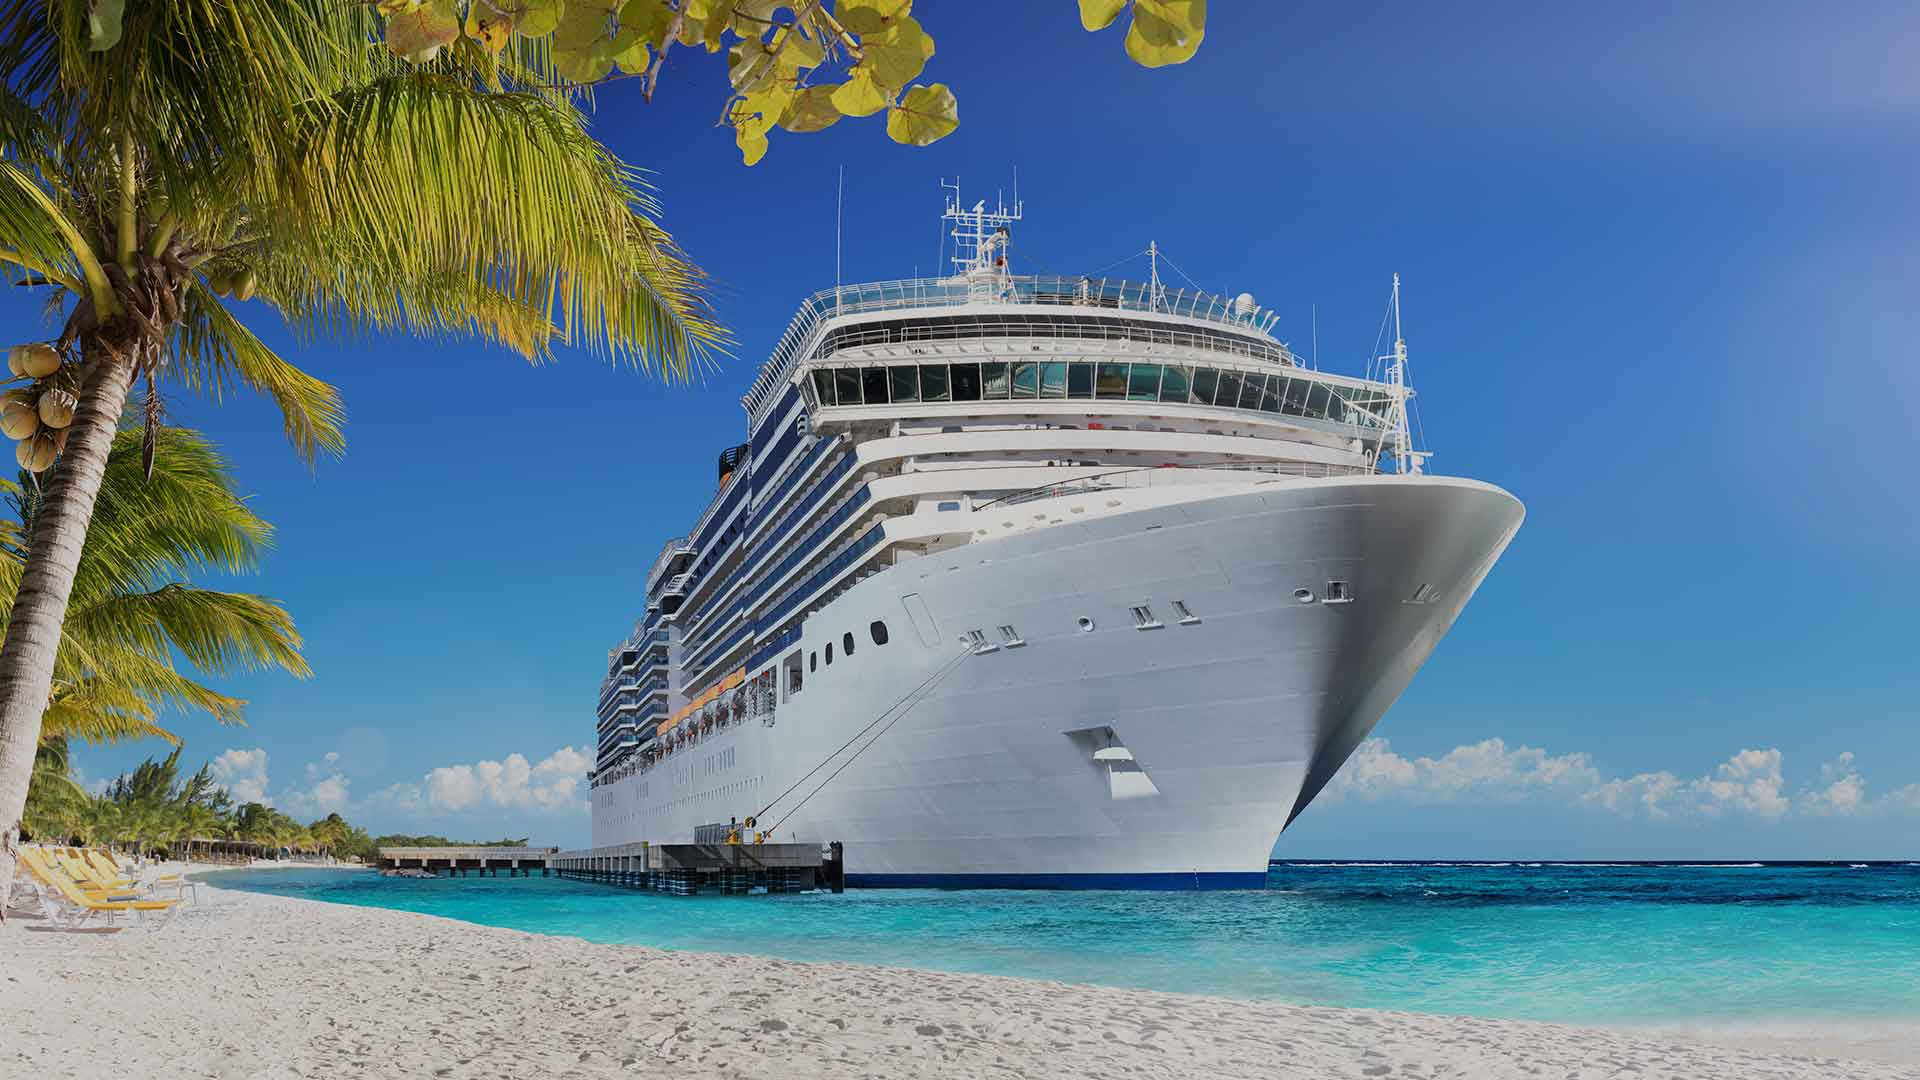 Cruise To Caribbean With Palm Trees - Tropical Beach Holiday - Image